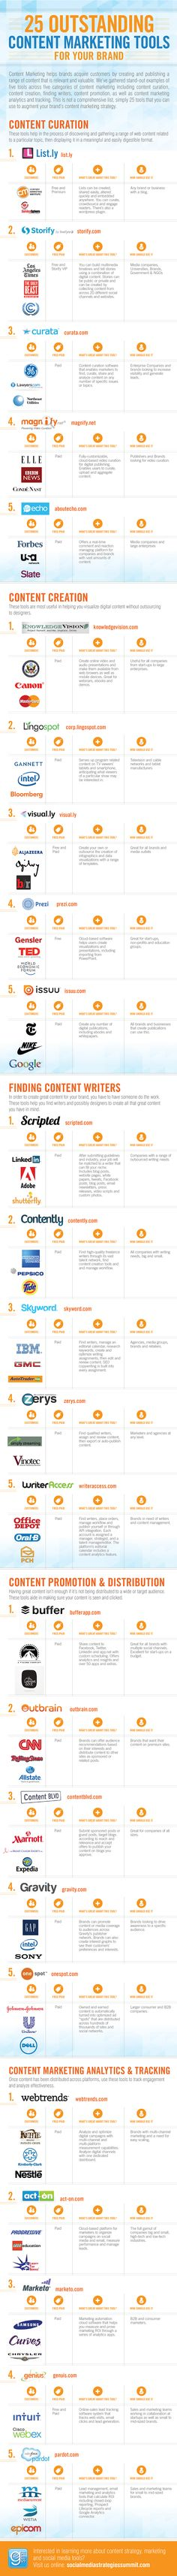 25 Outstanding Content Marketing Tools For Brand - #infographic #ContentMarketing #marketingtools